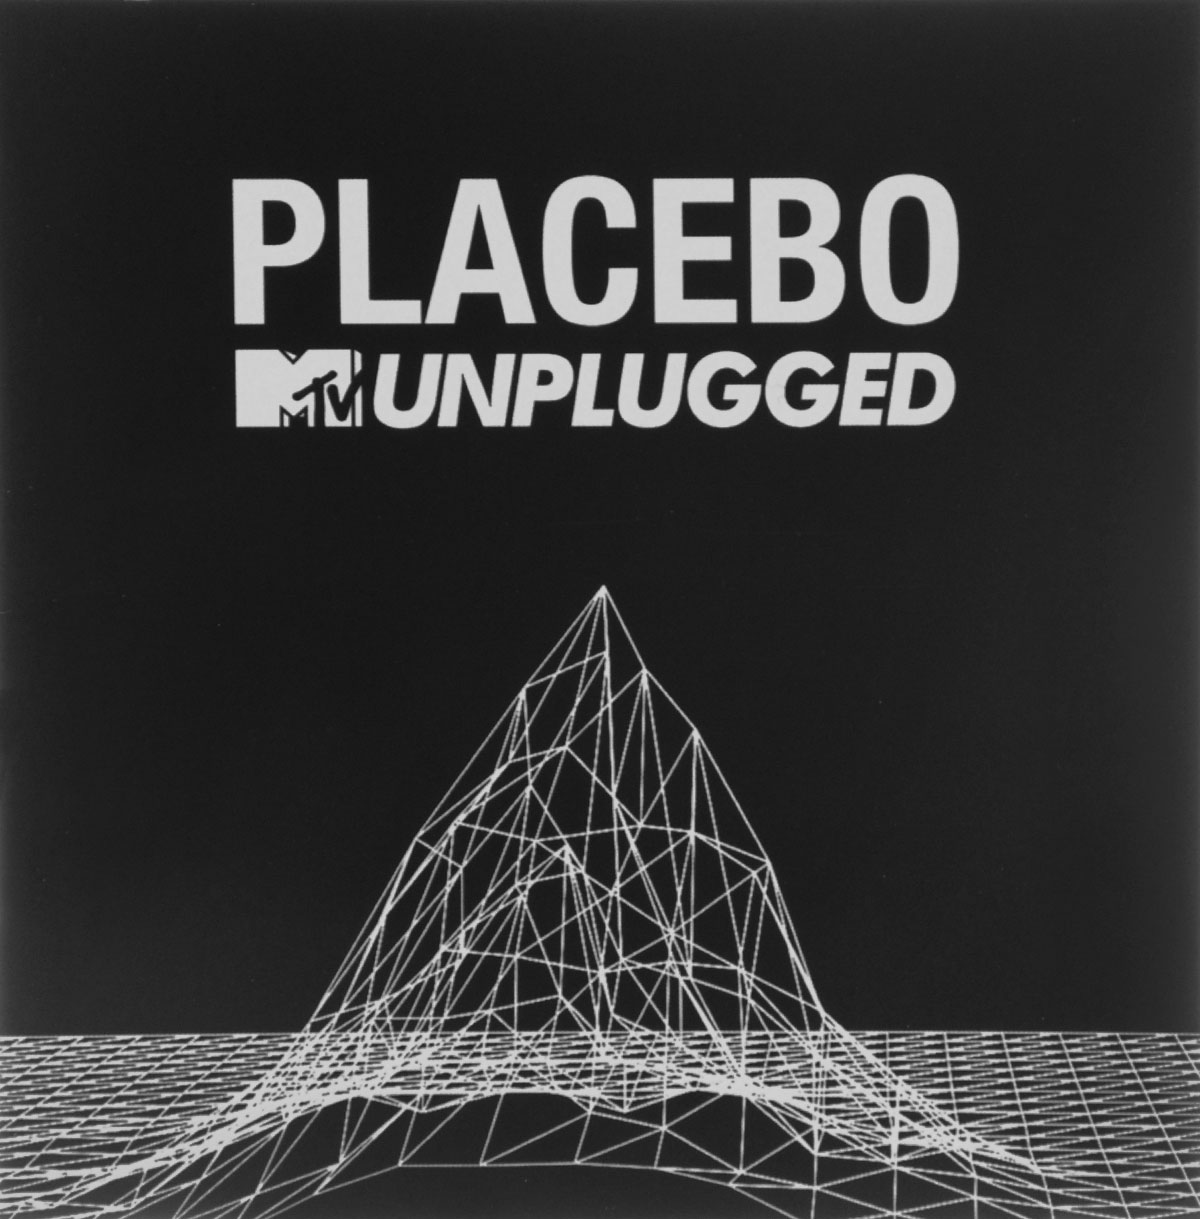 Placebo Placebo. MTV Unplugged placebo mtv unplugged limited deluxe edition blu ray dvd cd